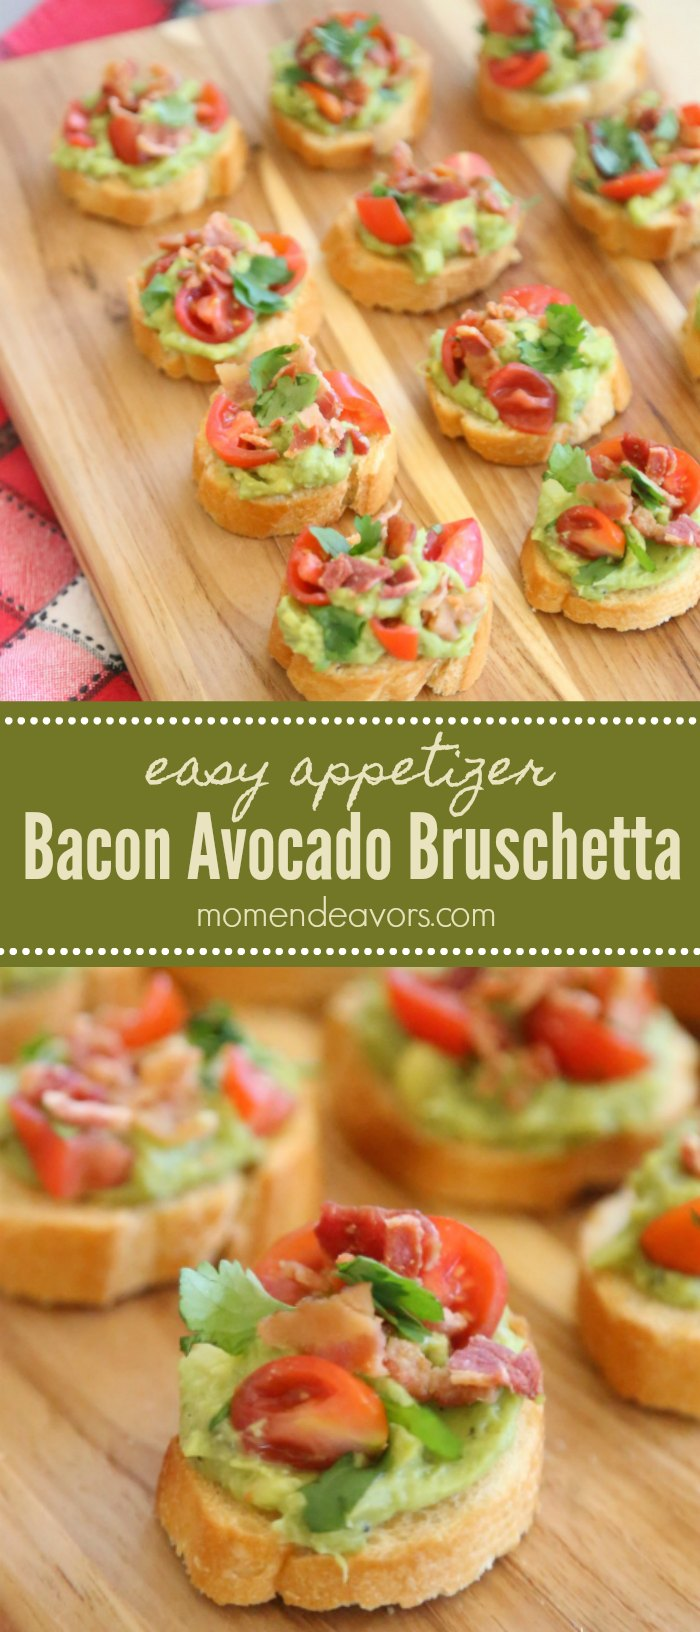 Bacon Avocado Bruschetta Appetizer